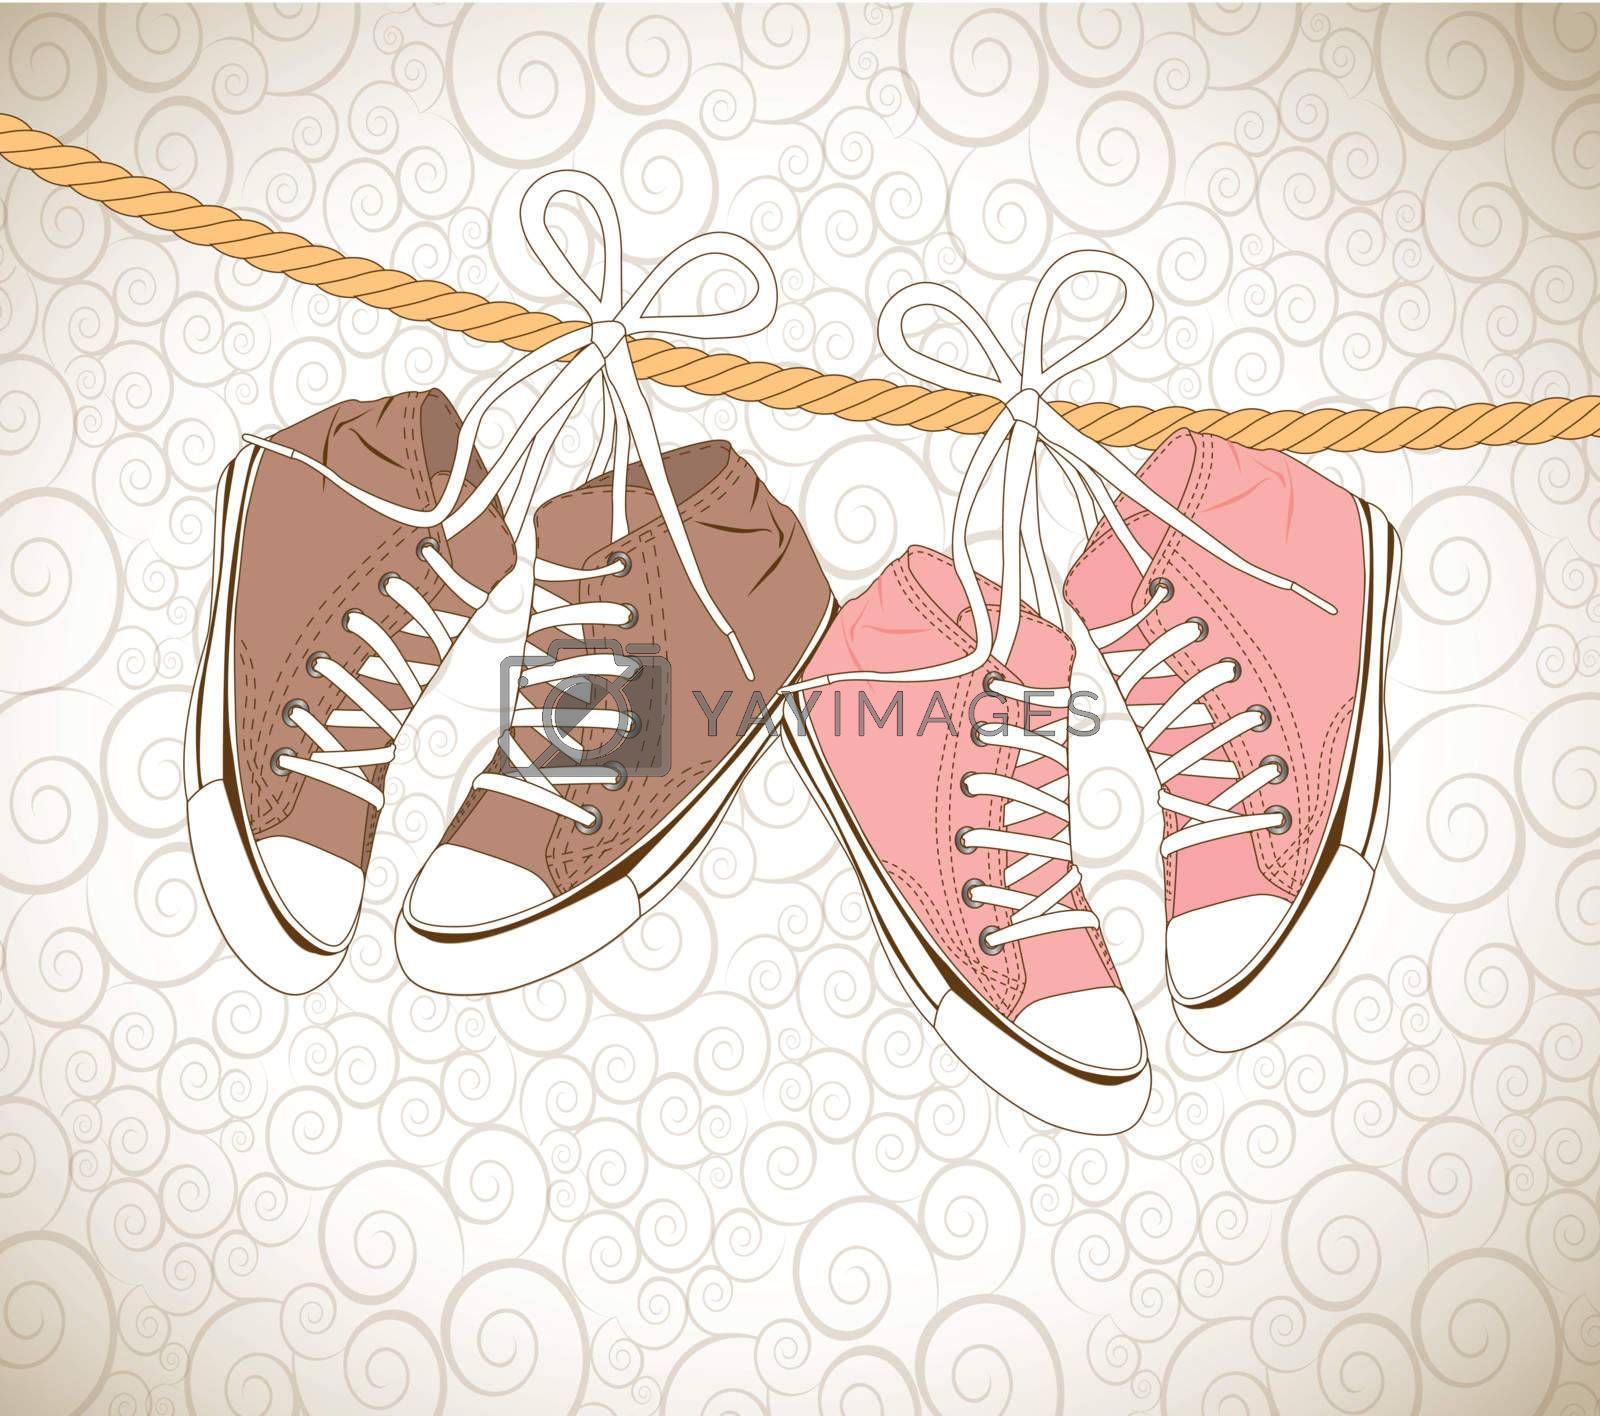 old shoes over vintage background vector illustration